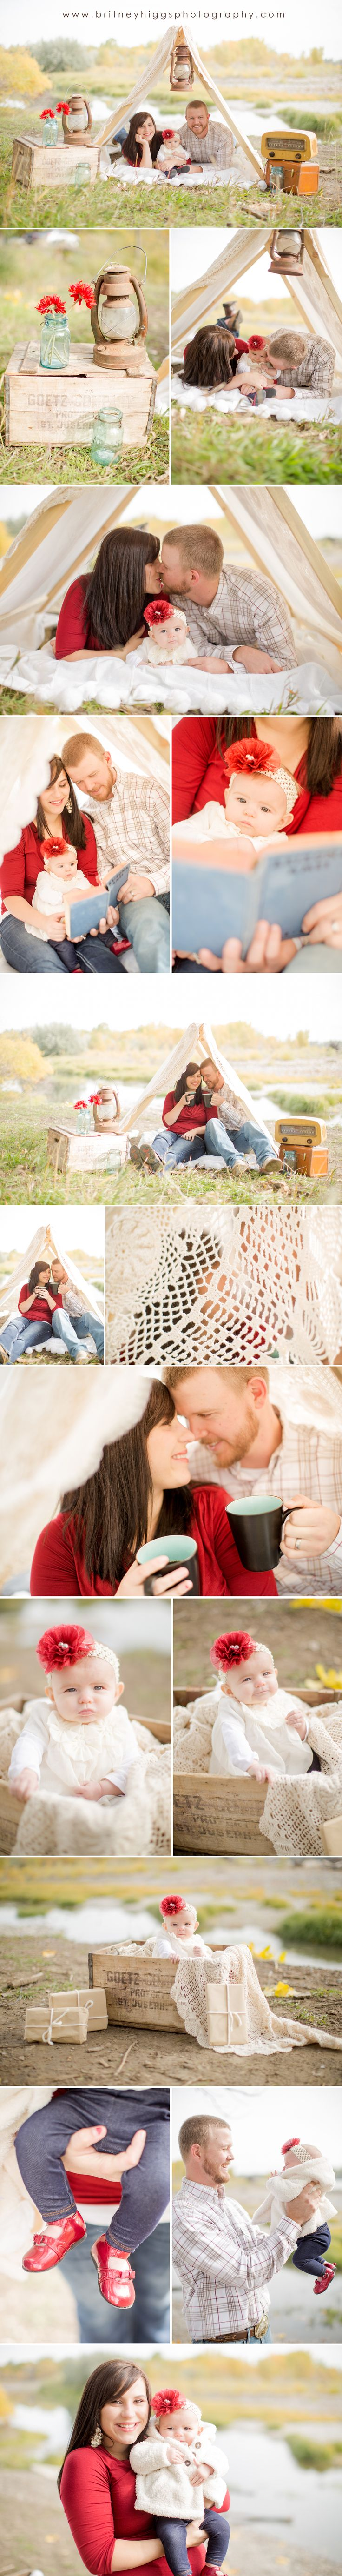 Camping Family Session! #family #photography